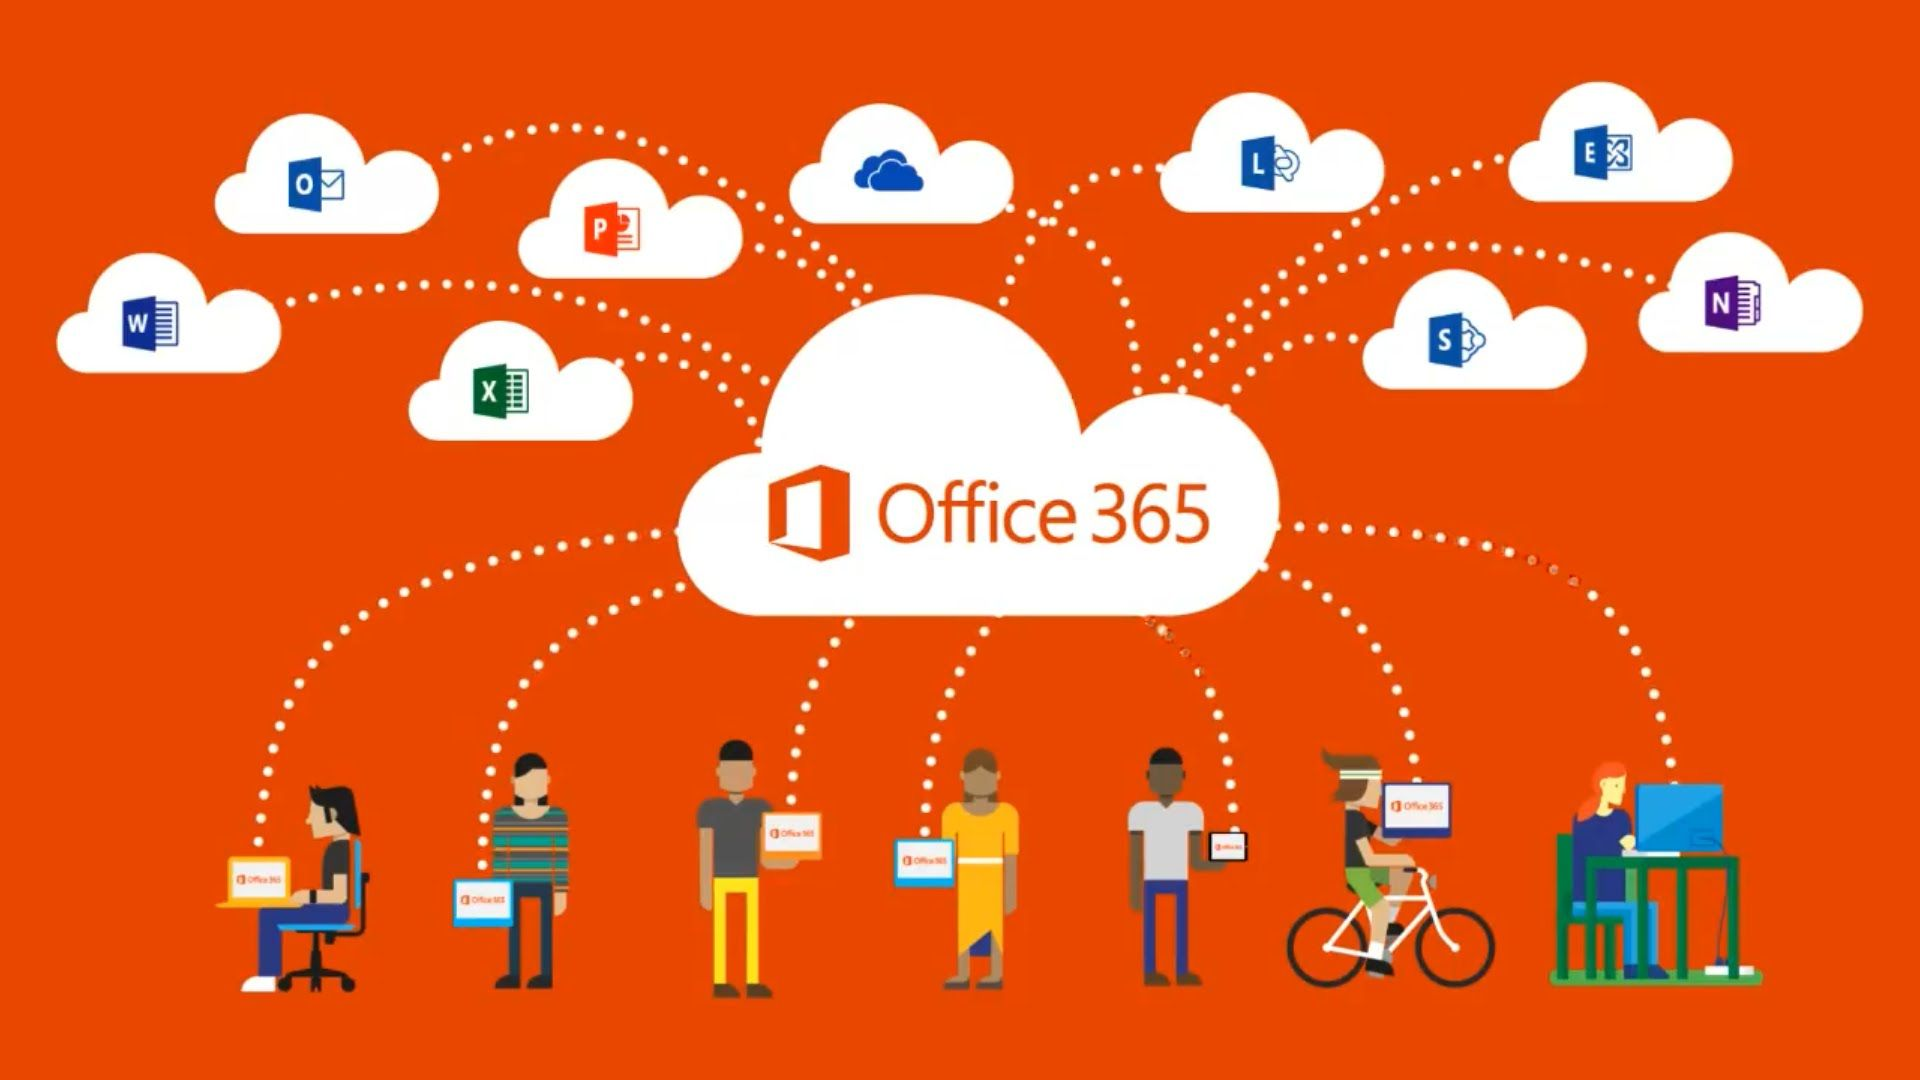 Beginner's guide to Microsoft Office 365. Here I'll introduce you to 365 and explain how it can help transform your mobile workforce.